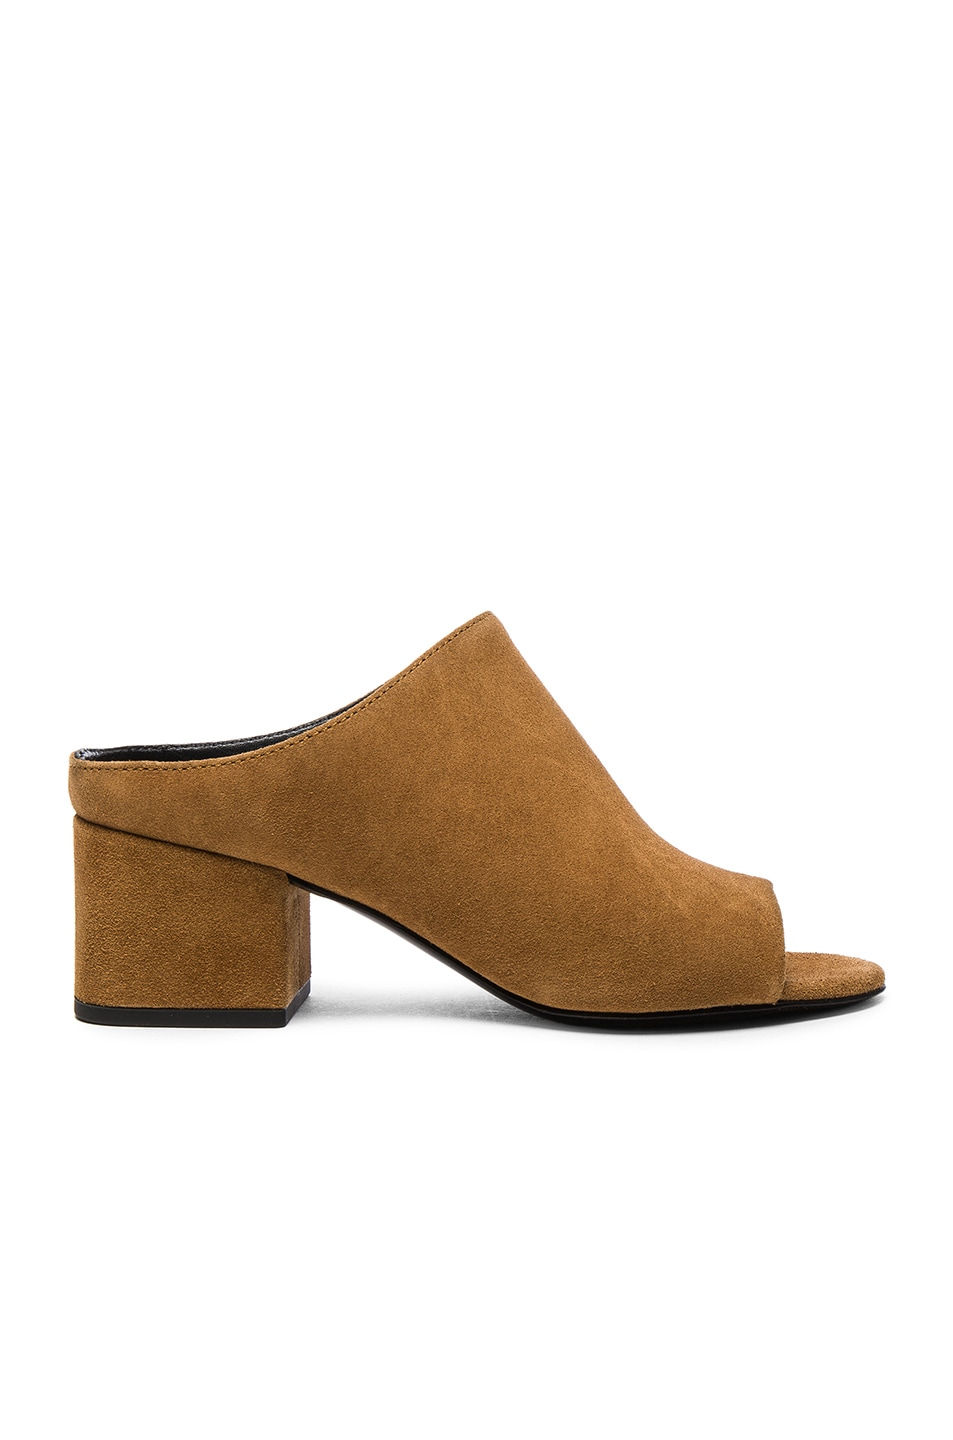 3.1 Phillip Lim Suede Cube Heels in . 6FAmOy